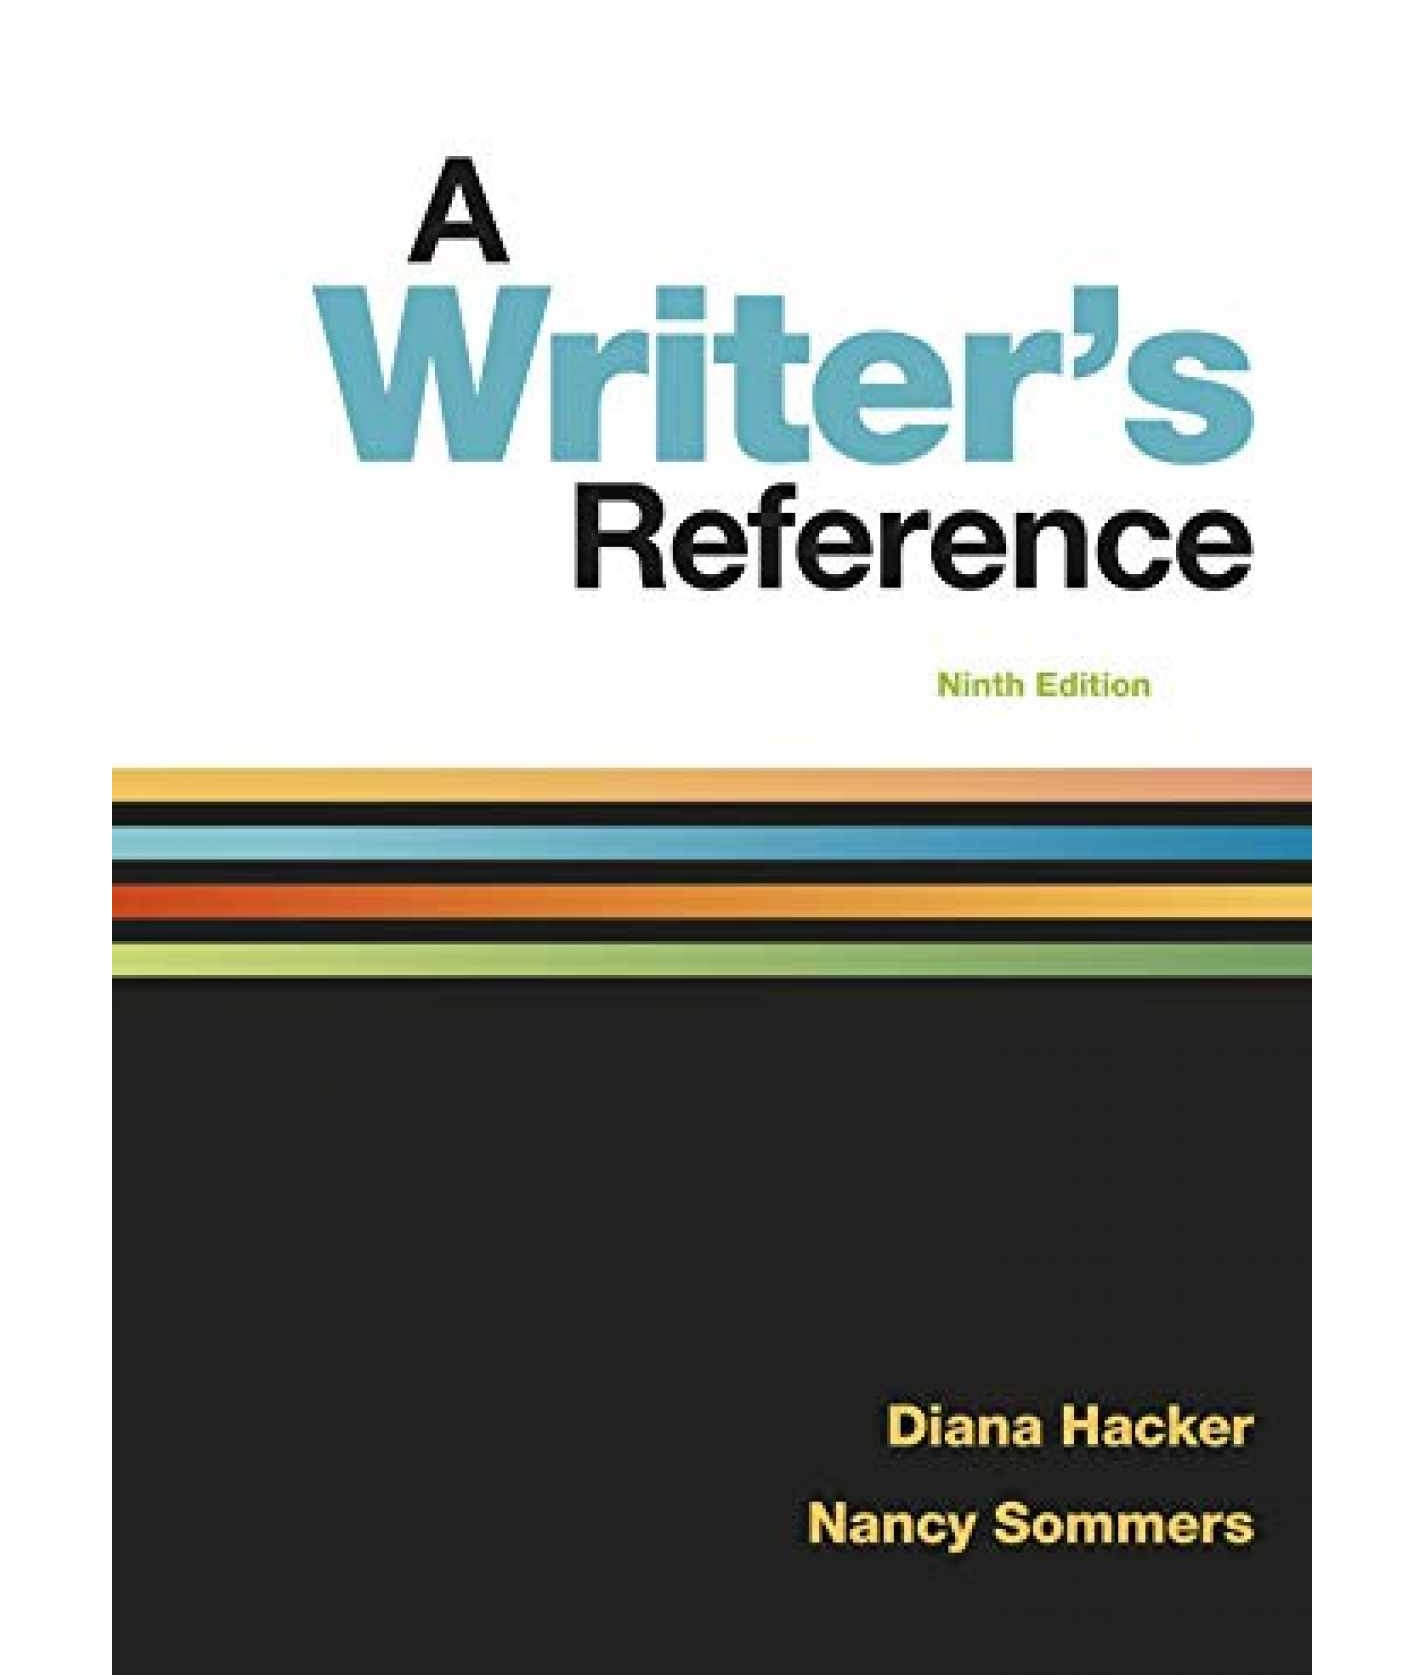 A Writer's Reference 9th Edition